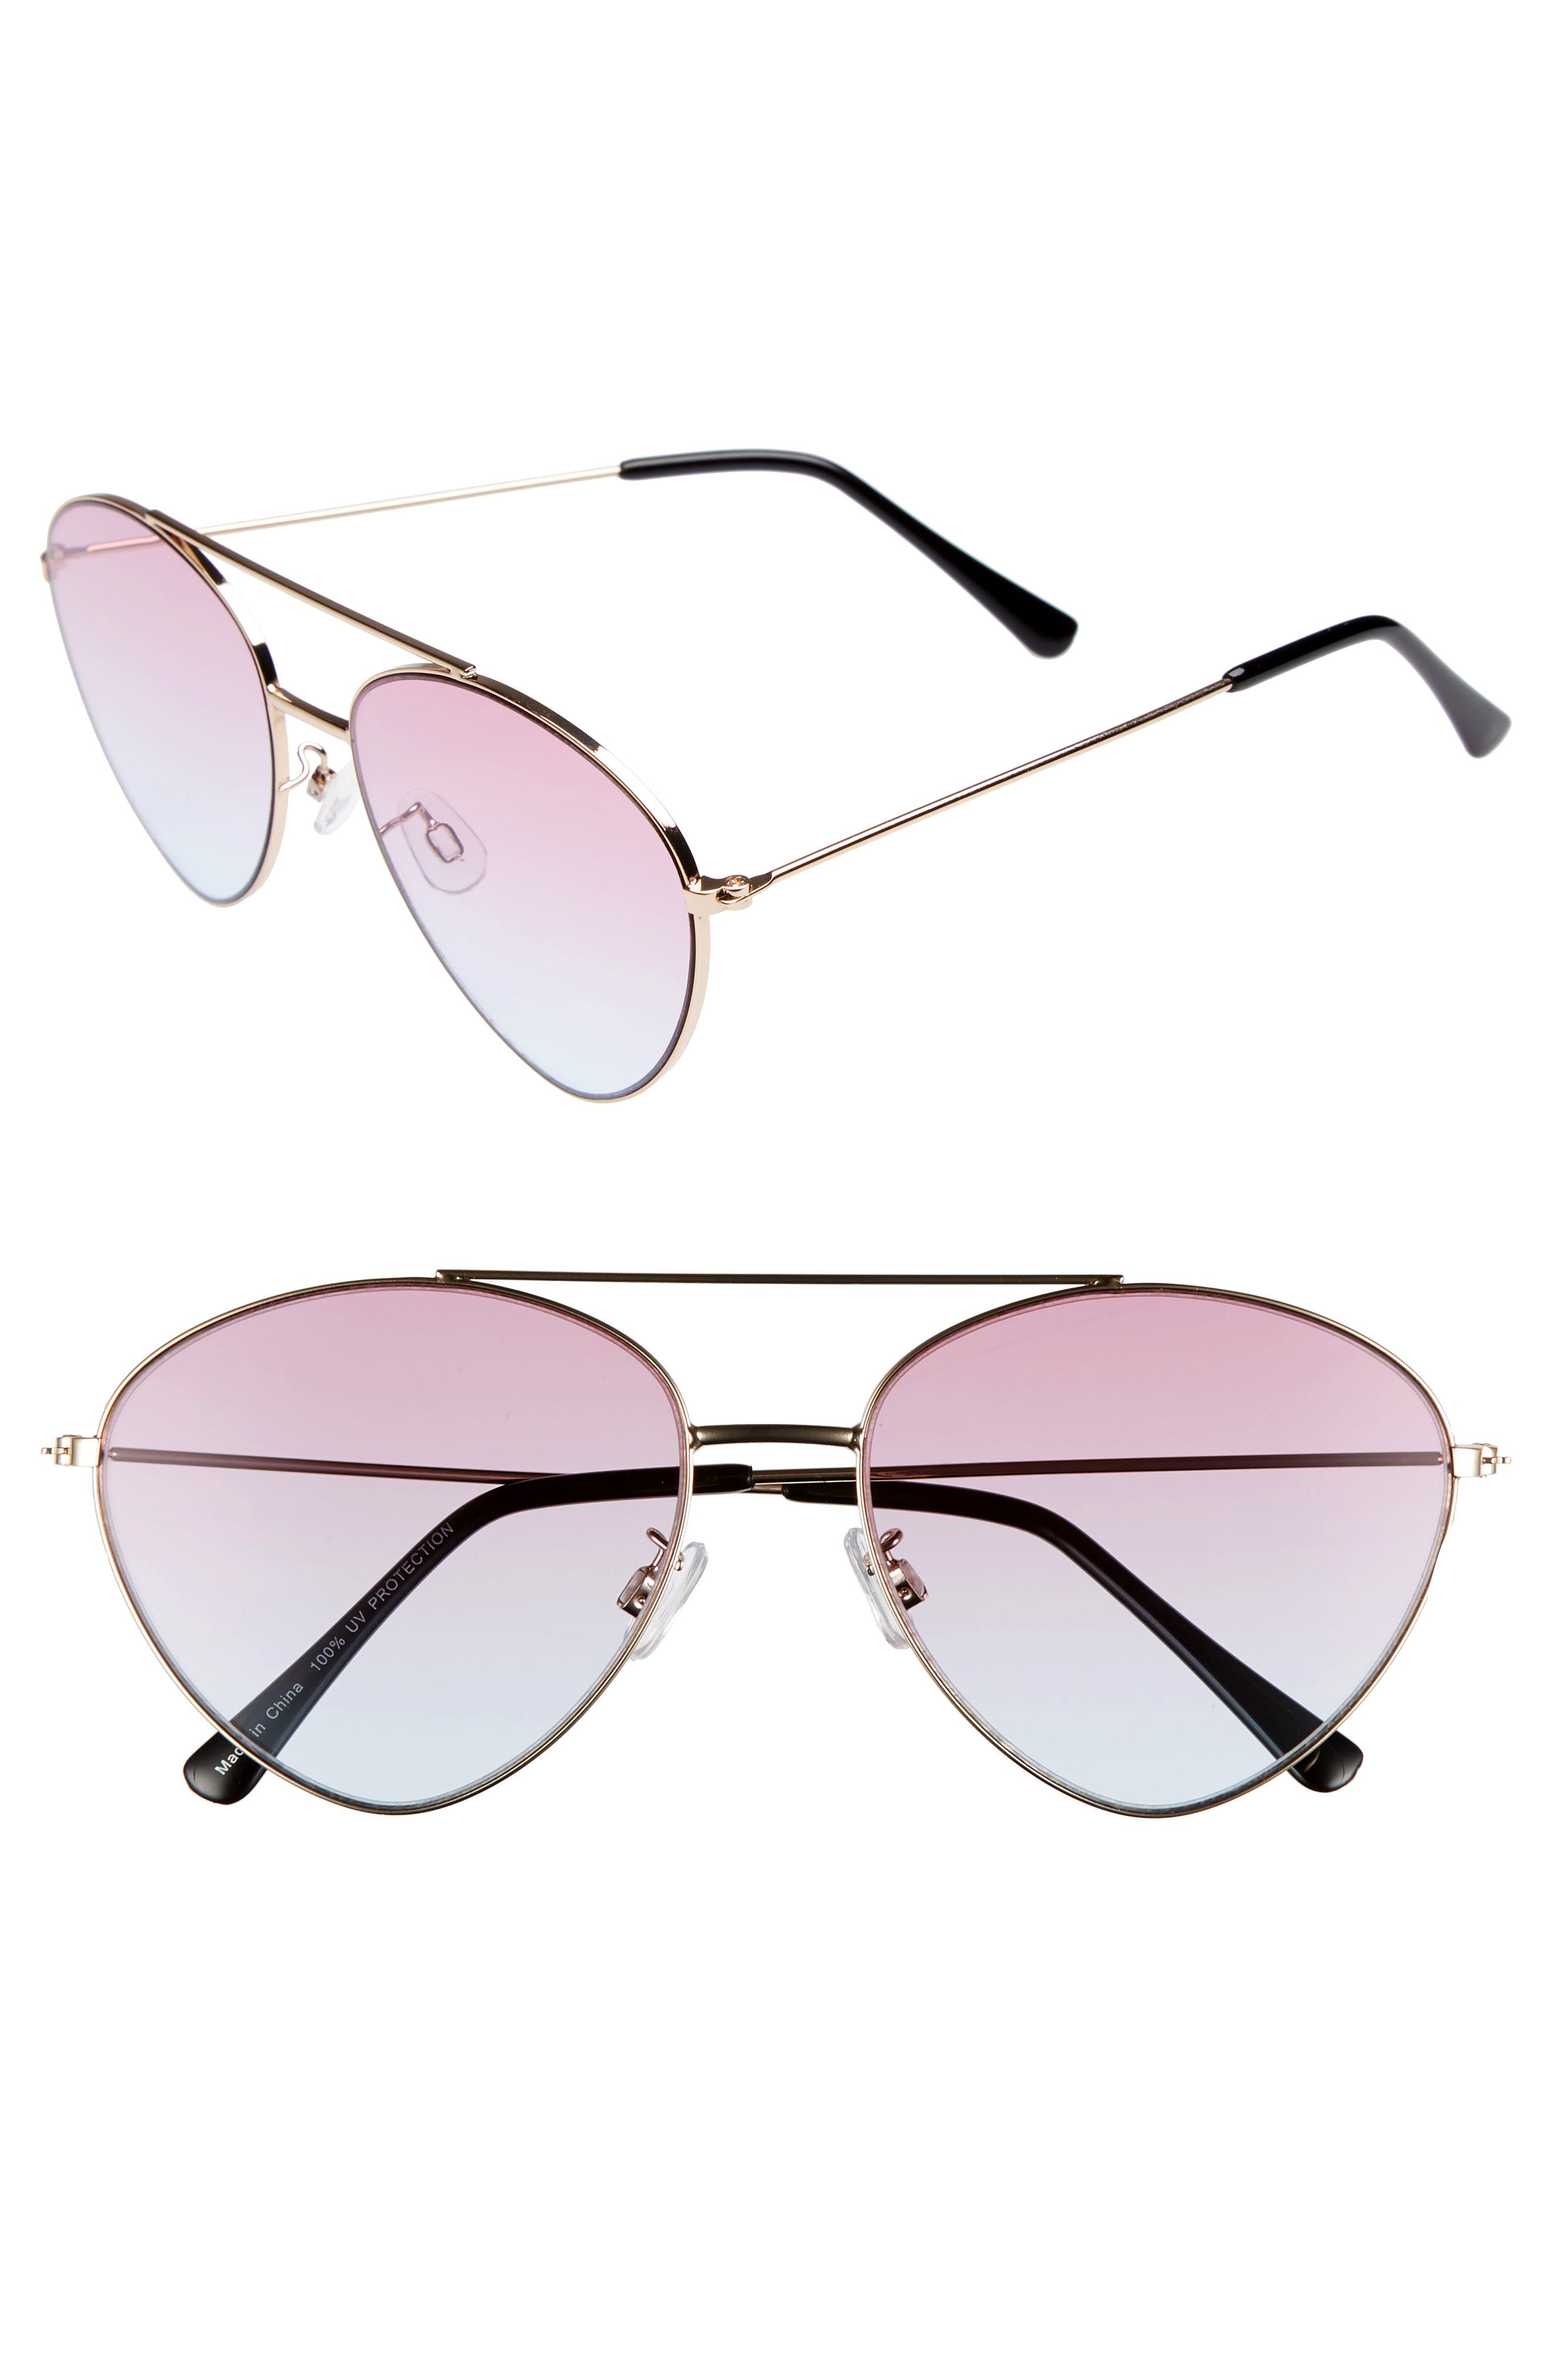 56mm Gradient Aviator Sunglasses,                         Main,                         color, Gold/ Pink/ Blue